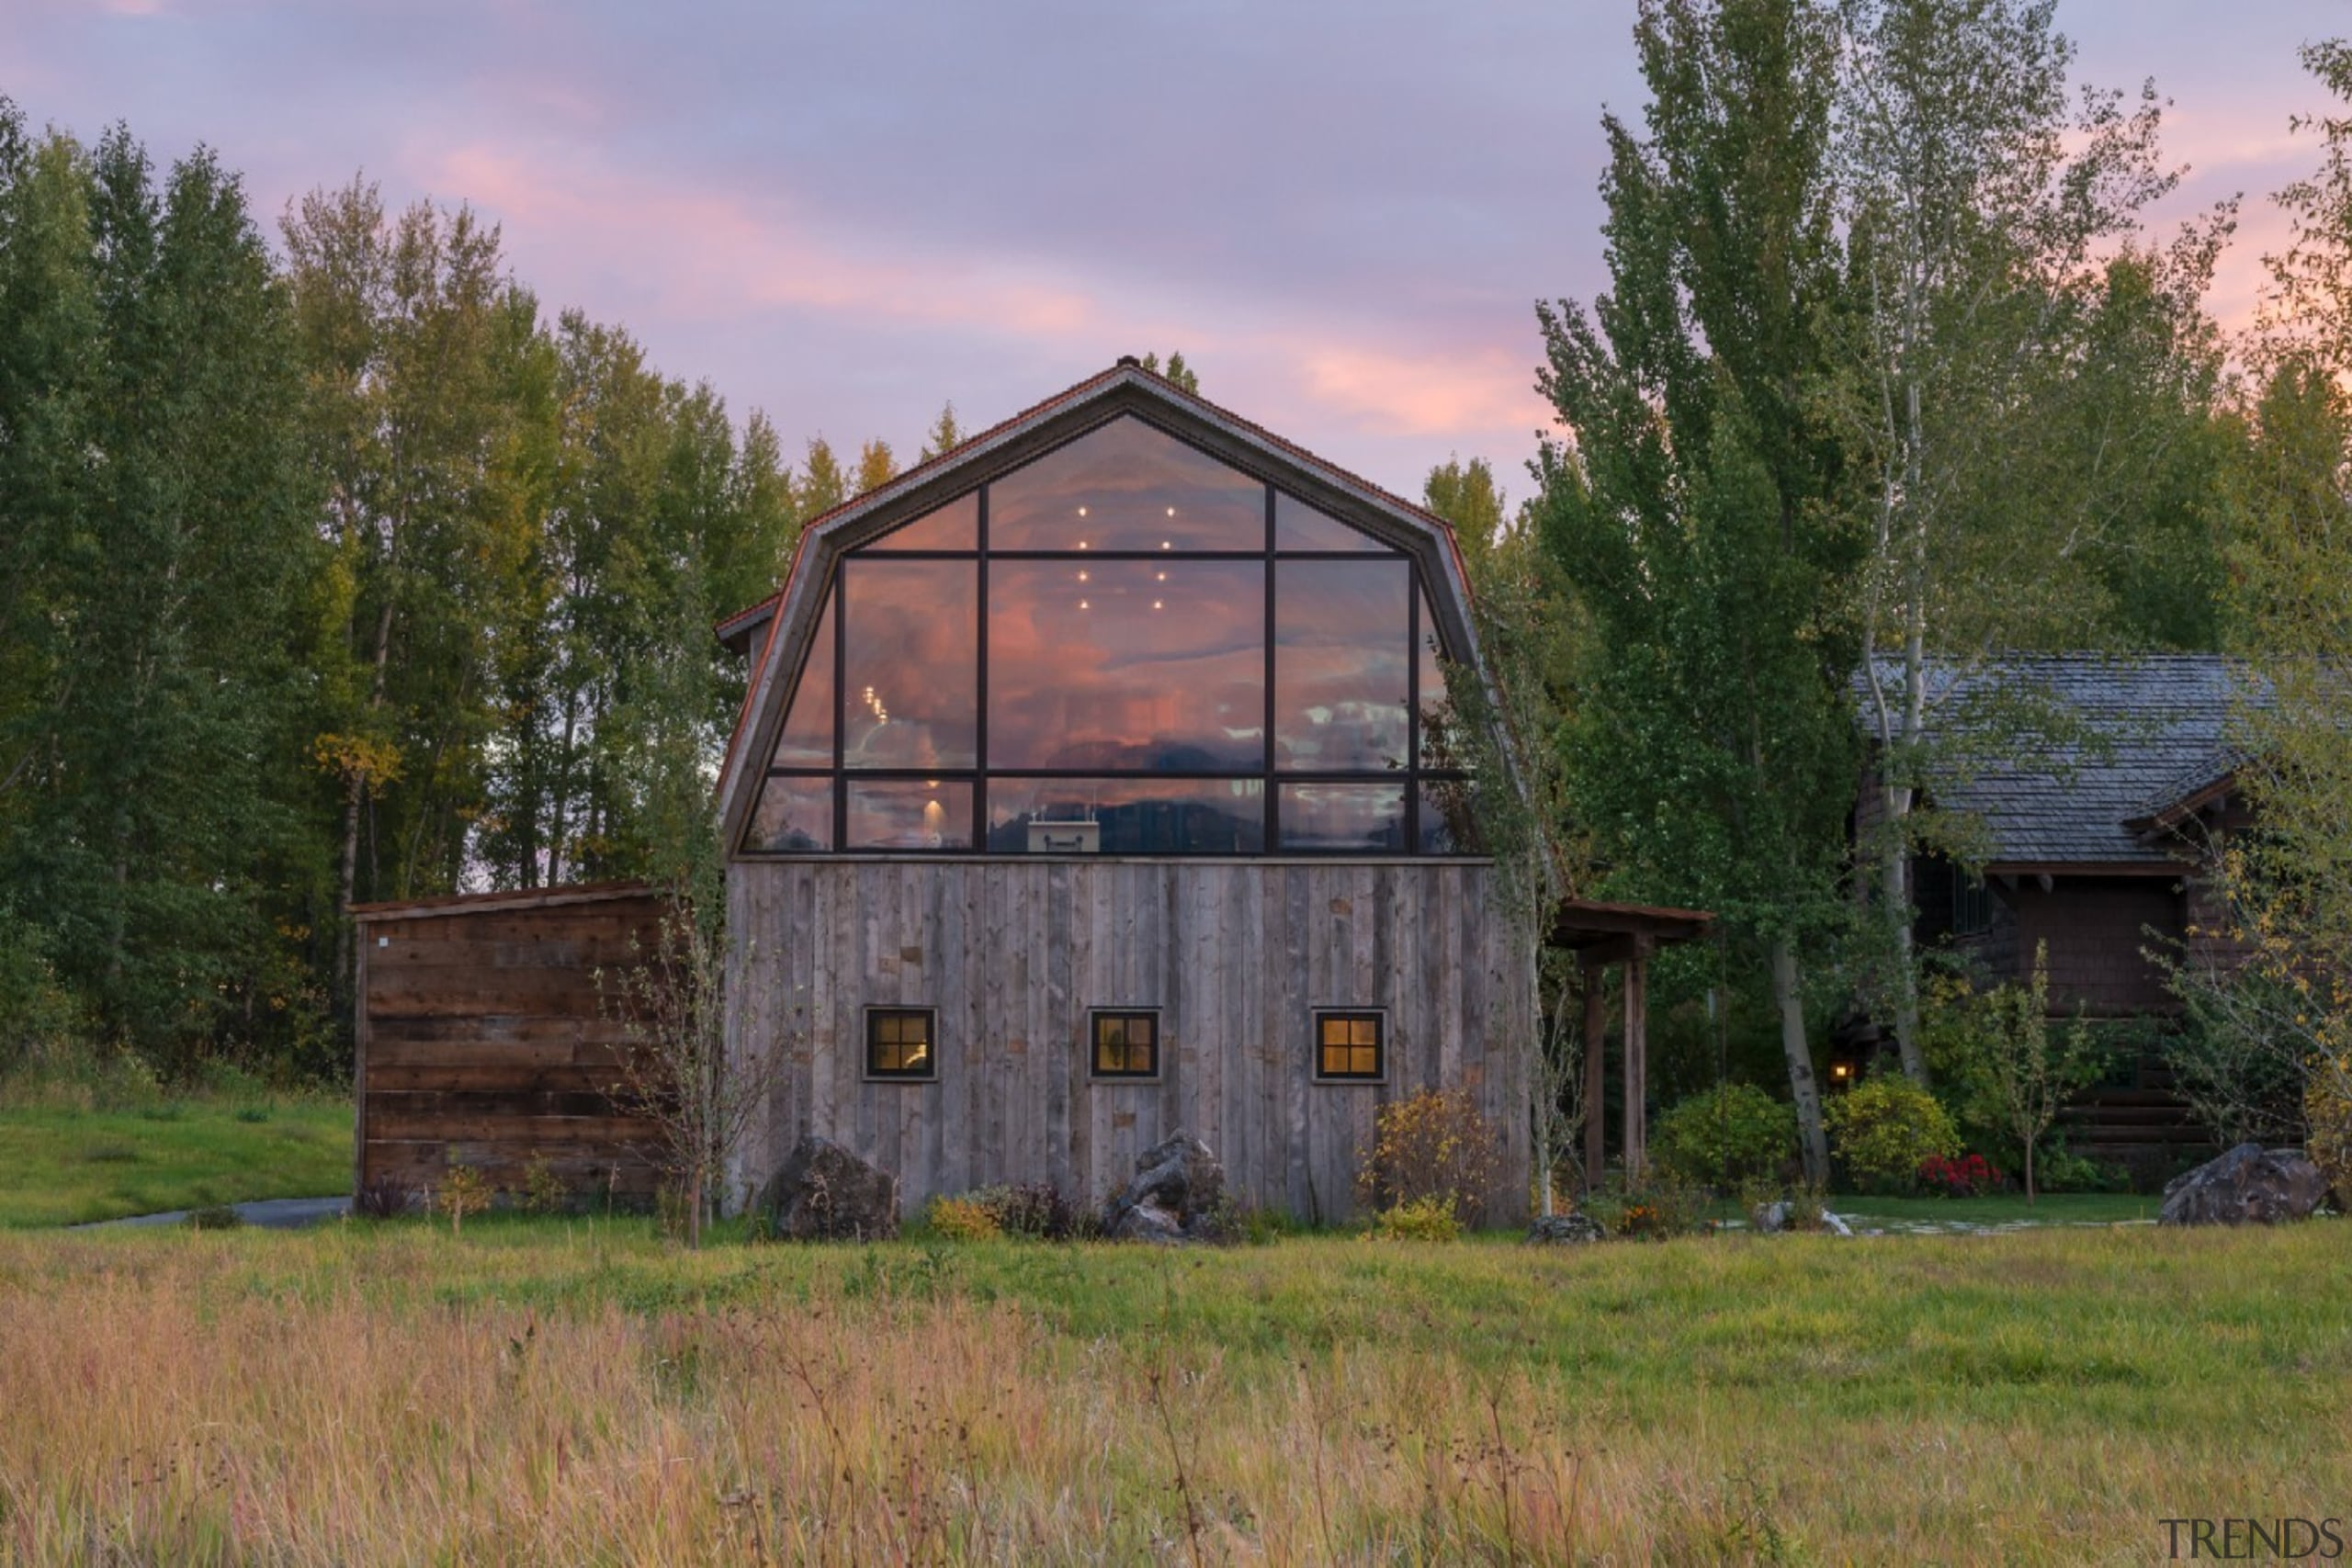 This large window looks out to the distant barn, cottage, farm, farmhouse, grass, home, house, hut, land lot, landscape, property, real estate, rural area, shack, shed, tree, brown